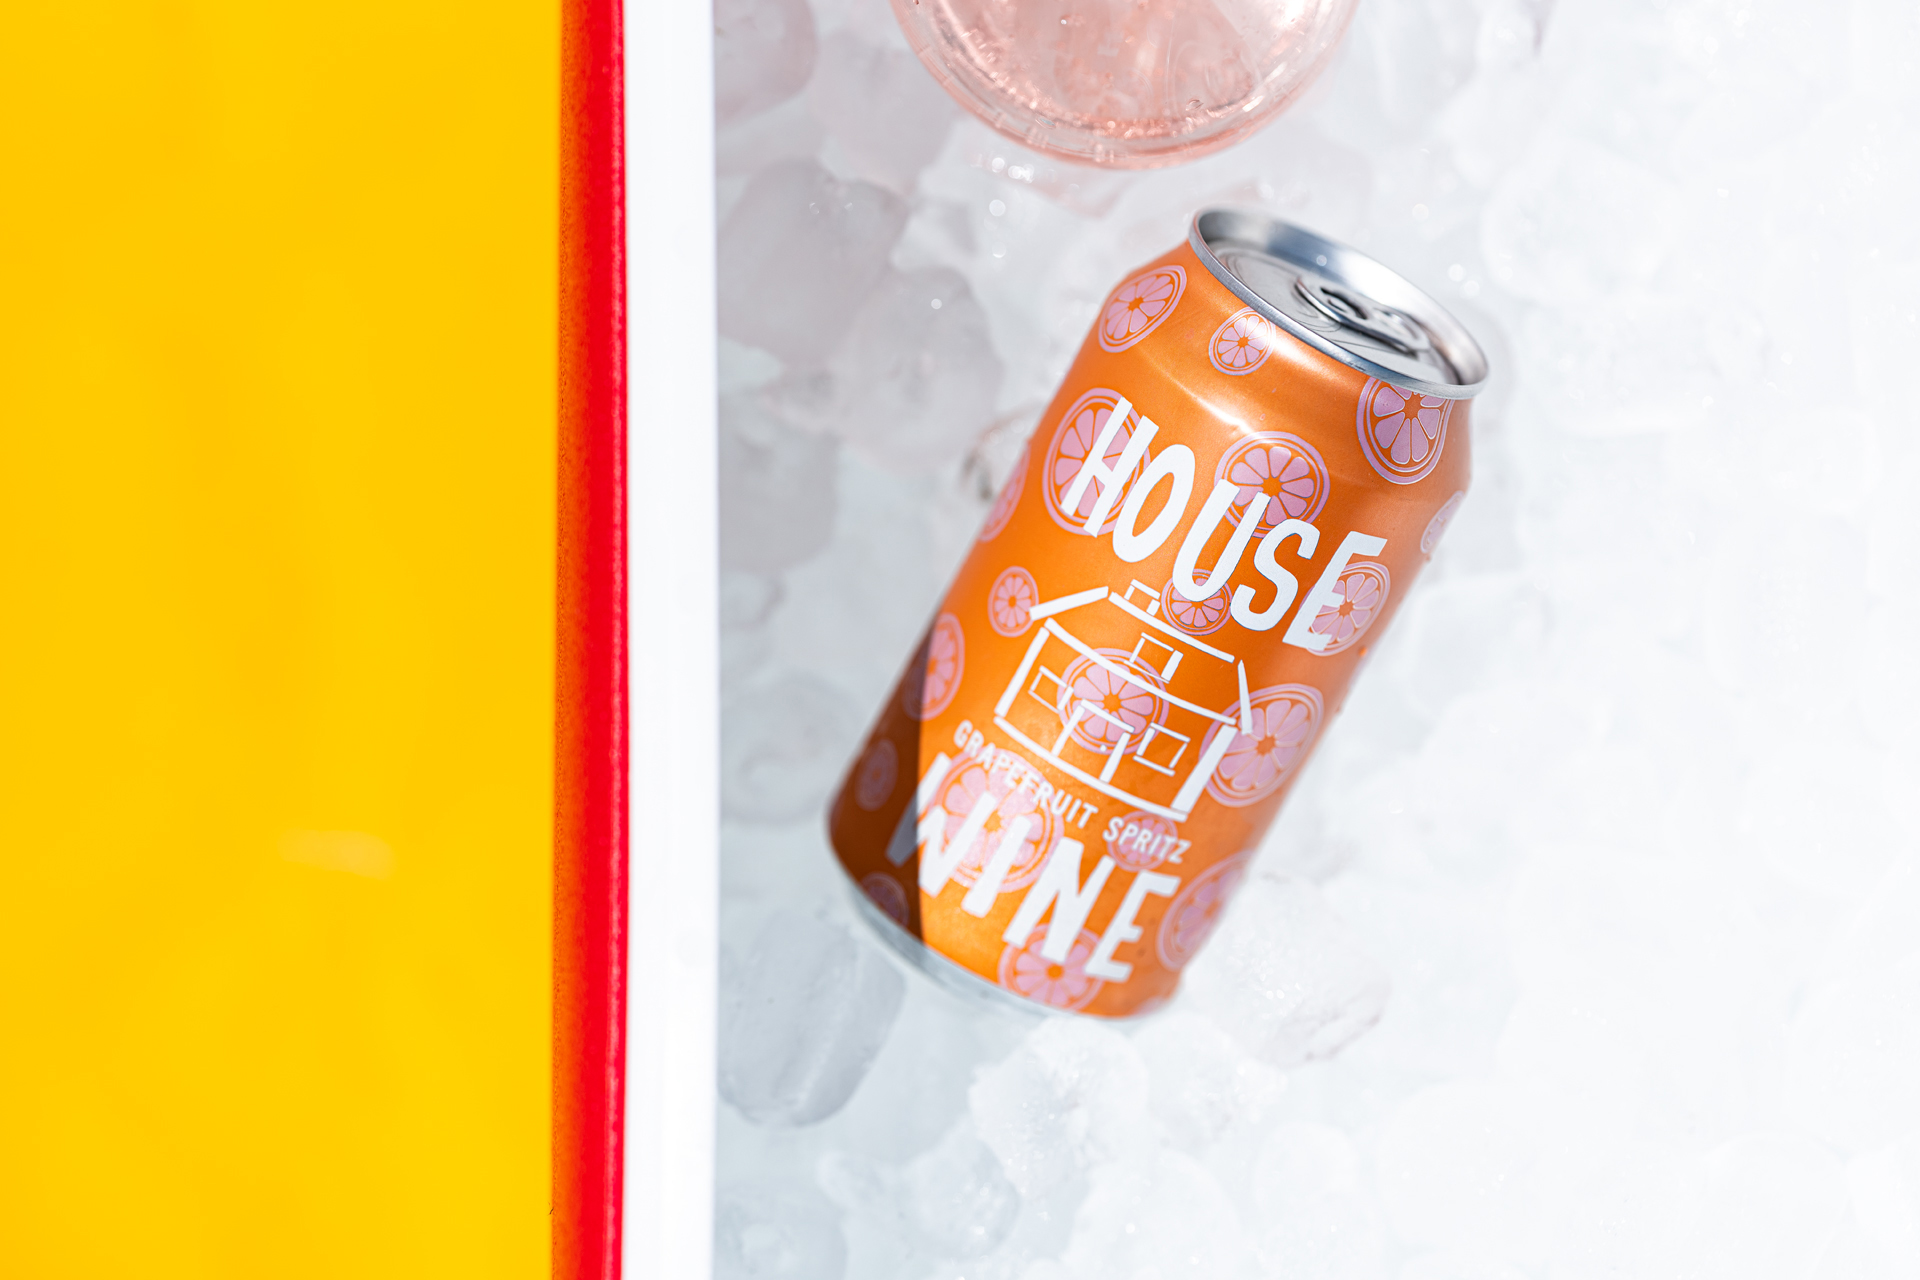 House Wine Grapefruit is one of our six favorite canned wine spritzers